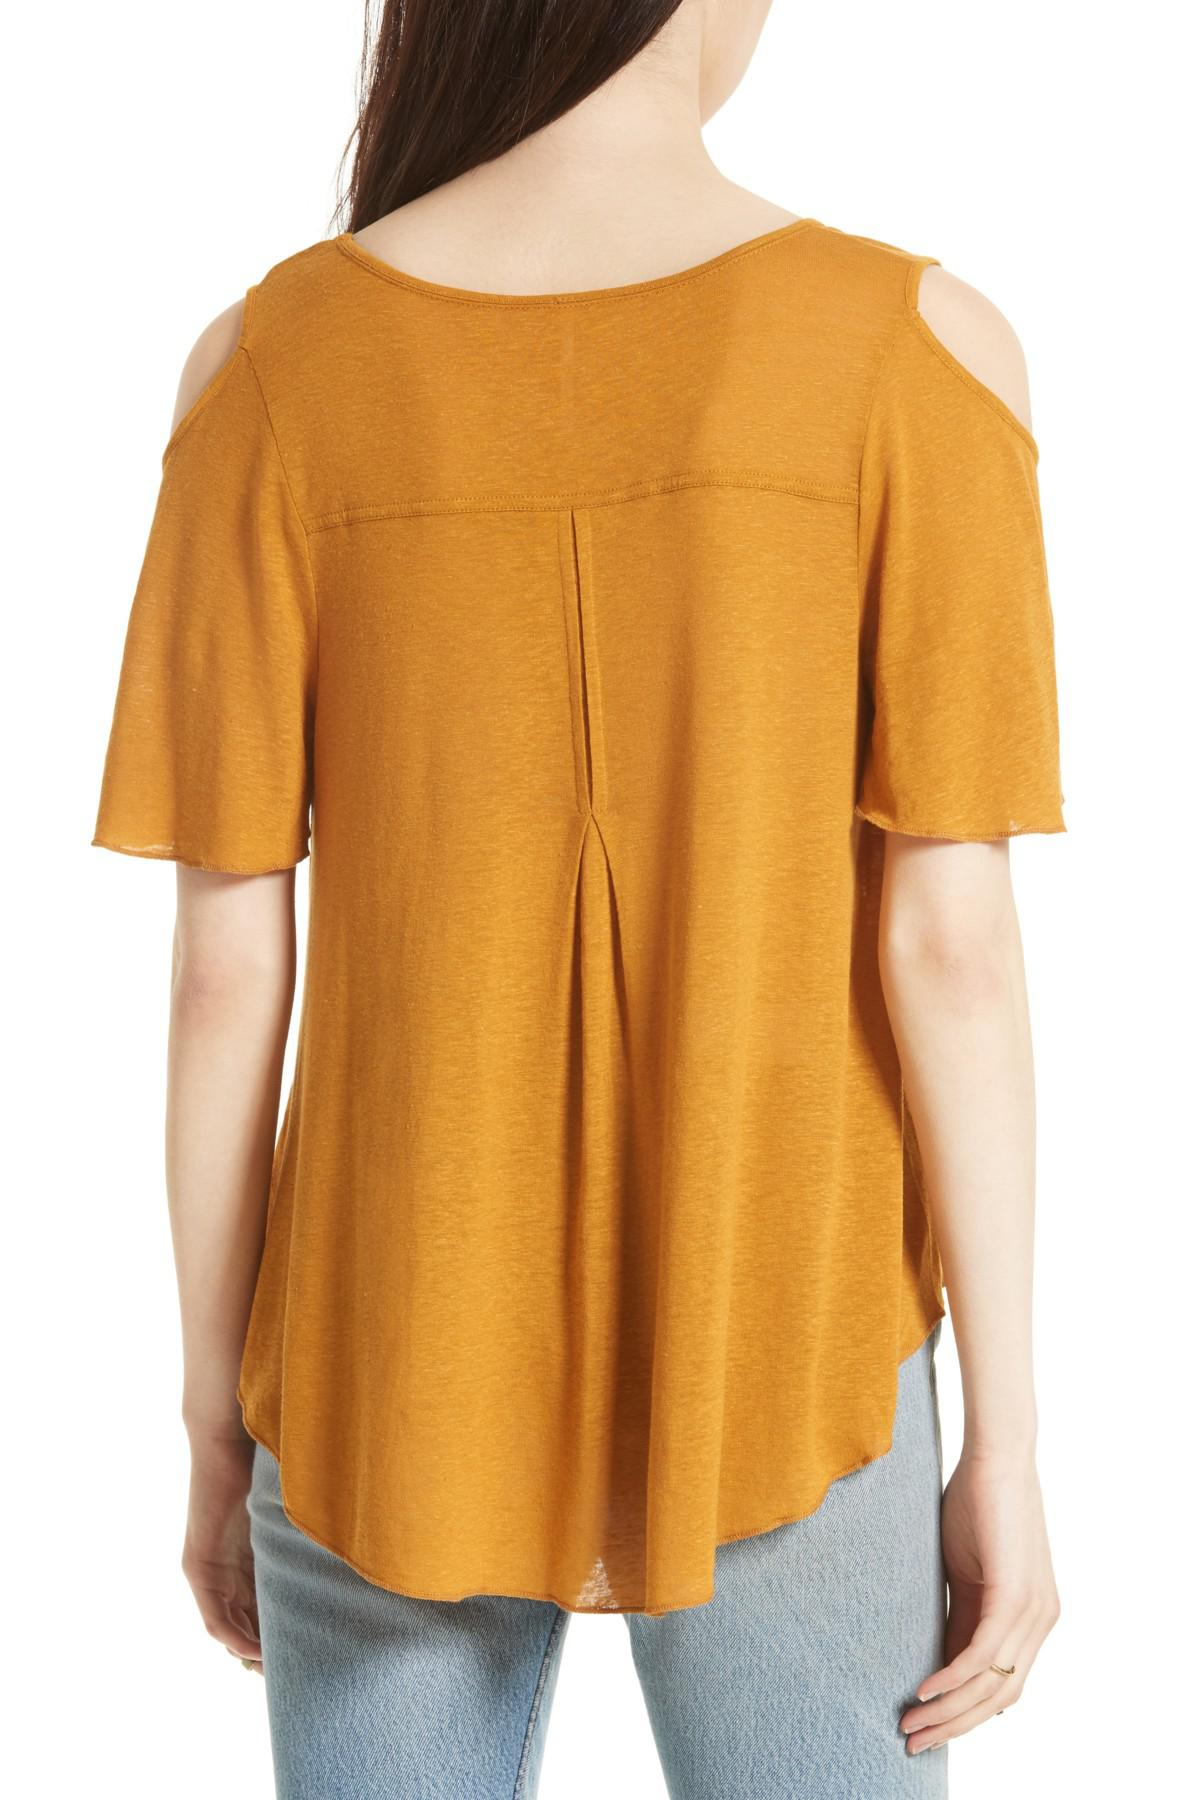 d72cf255e786c1 Gallery. Previously sold at  Nordstrom Rack · Women s Champagne Tops  Women s Free People ...